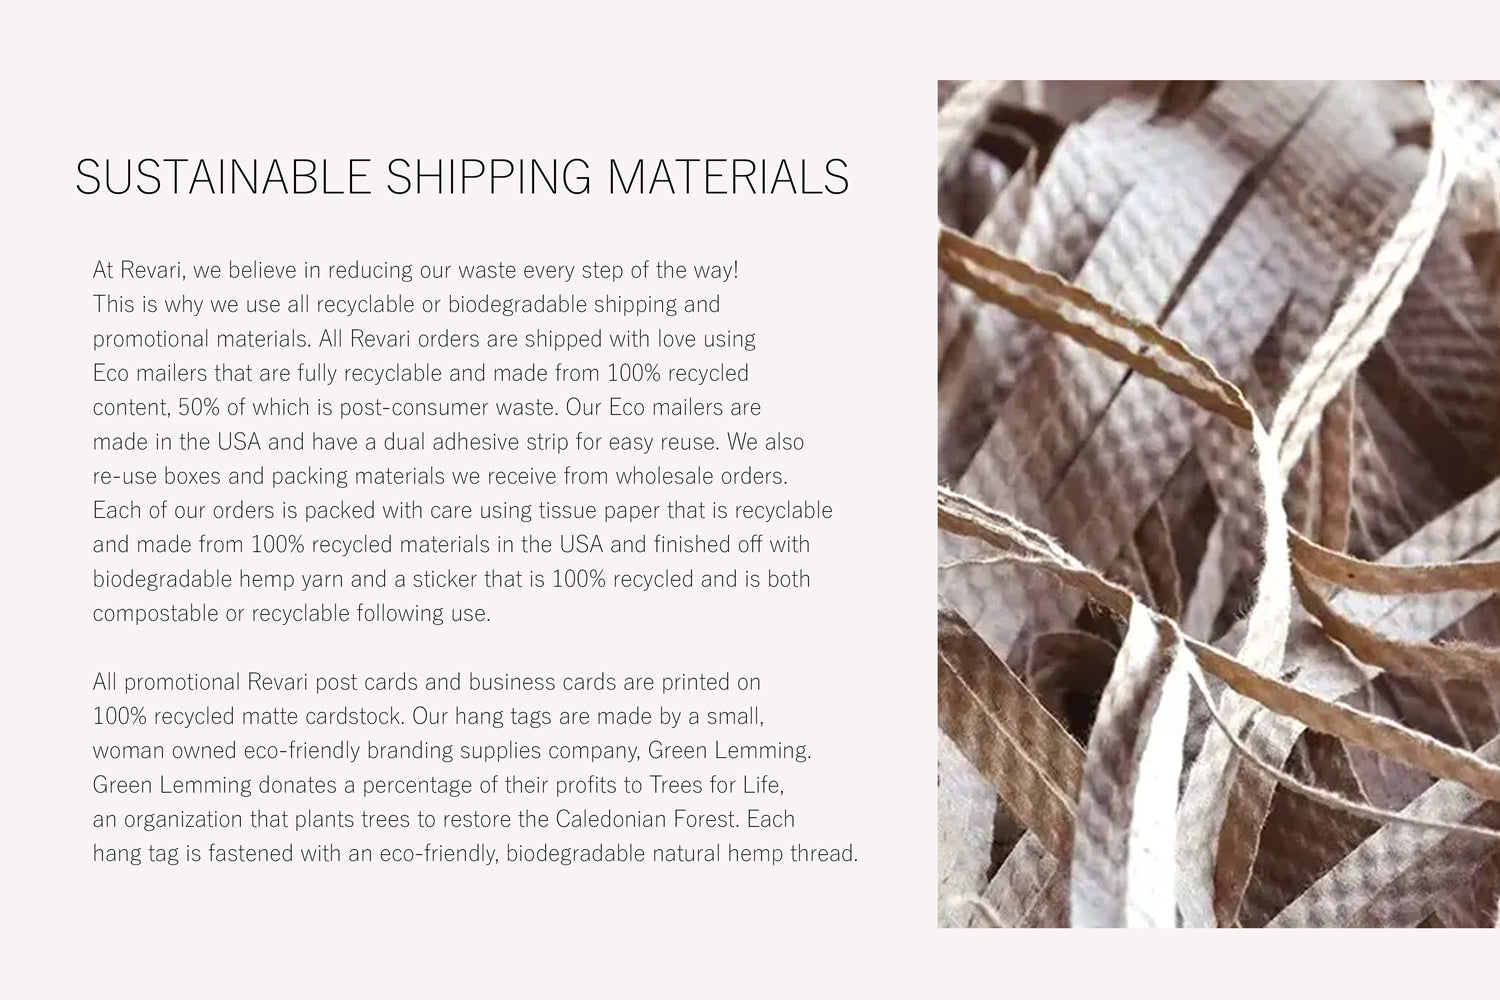 Sustainable Shipping Materials